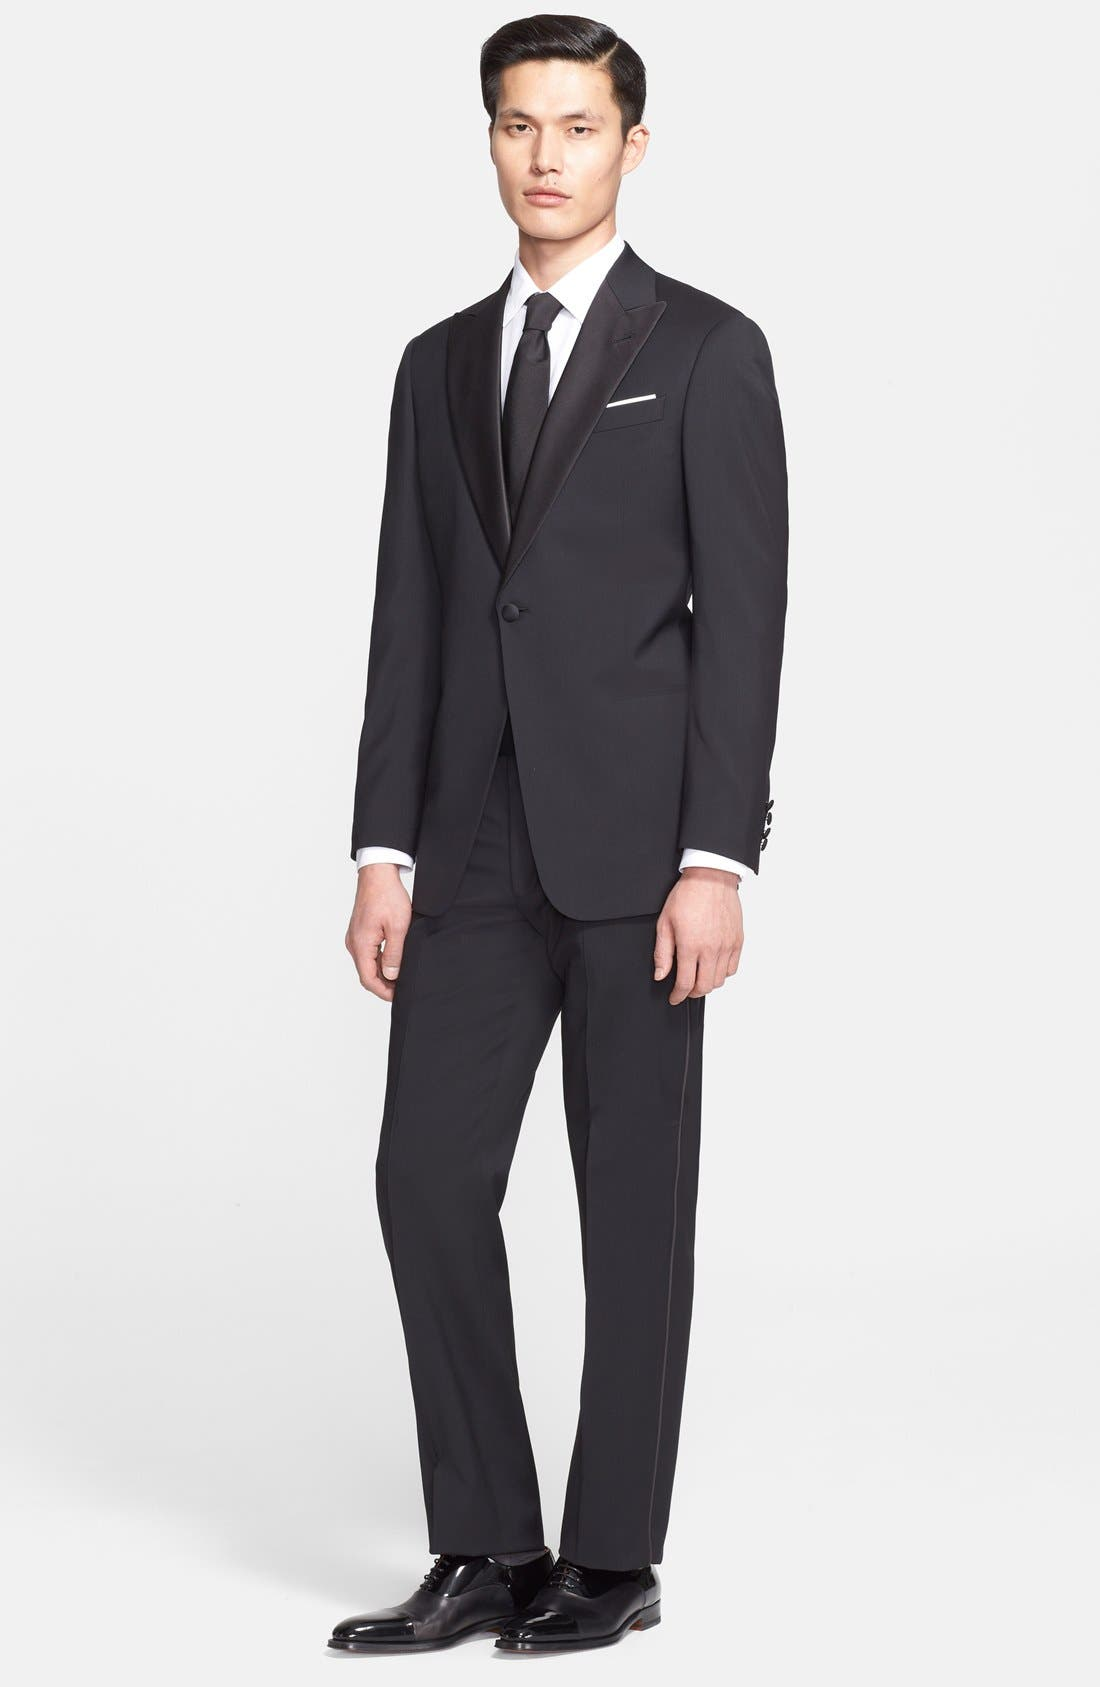 Alternate Image 1 Selected - Armani Collezioni 'Giorgio' Trim Fit Peak Lapel Wool Tuxedo (Free Next Day Shipping)